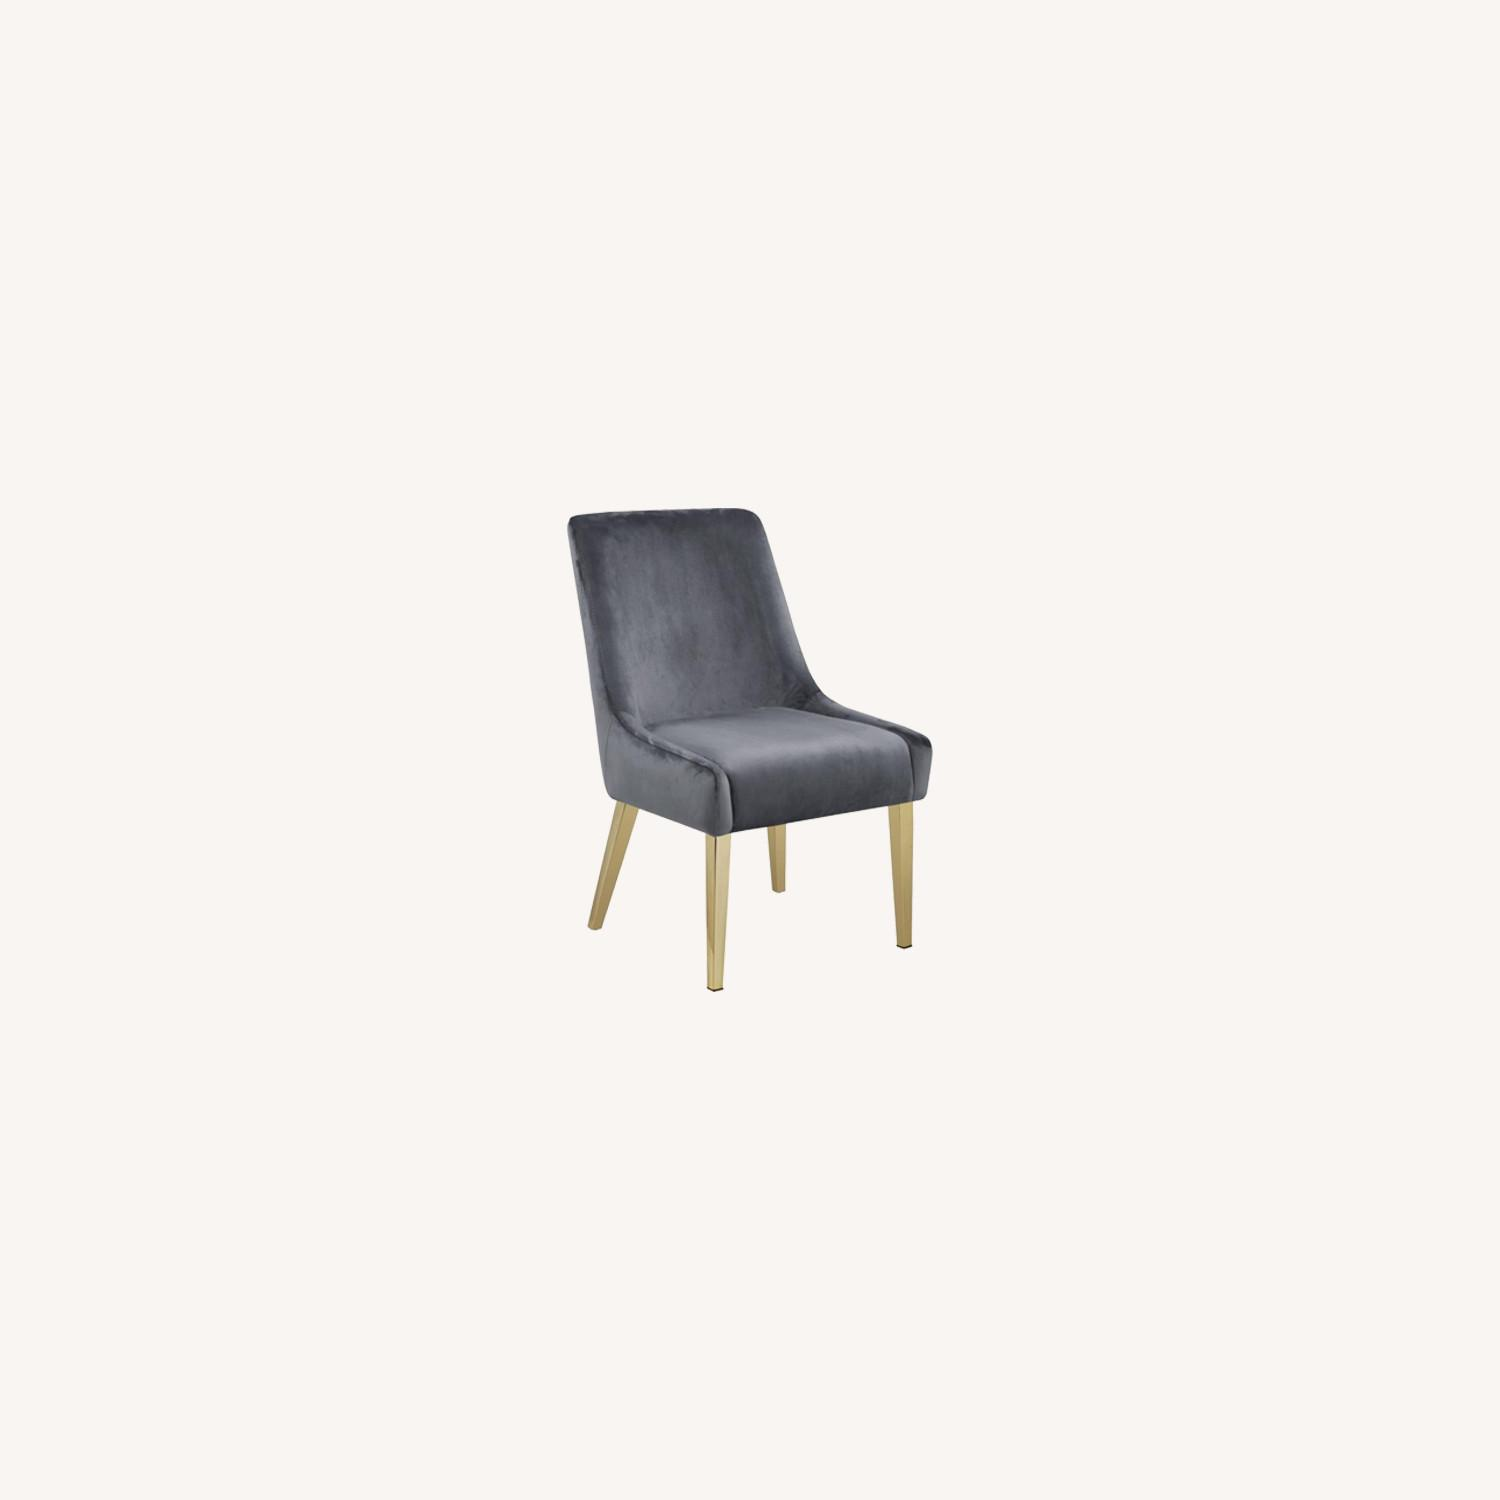 Dining Chair Upholstered In Grey Fabric - image-4